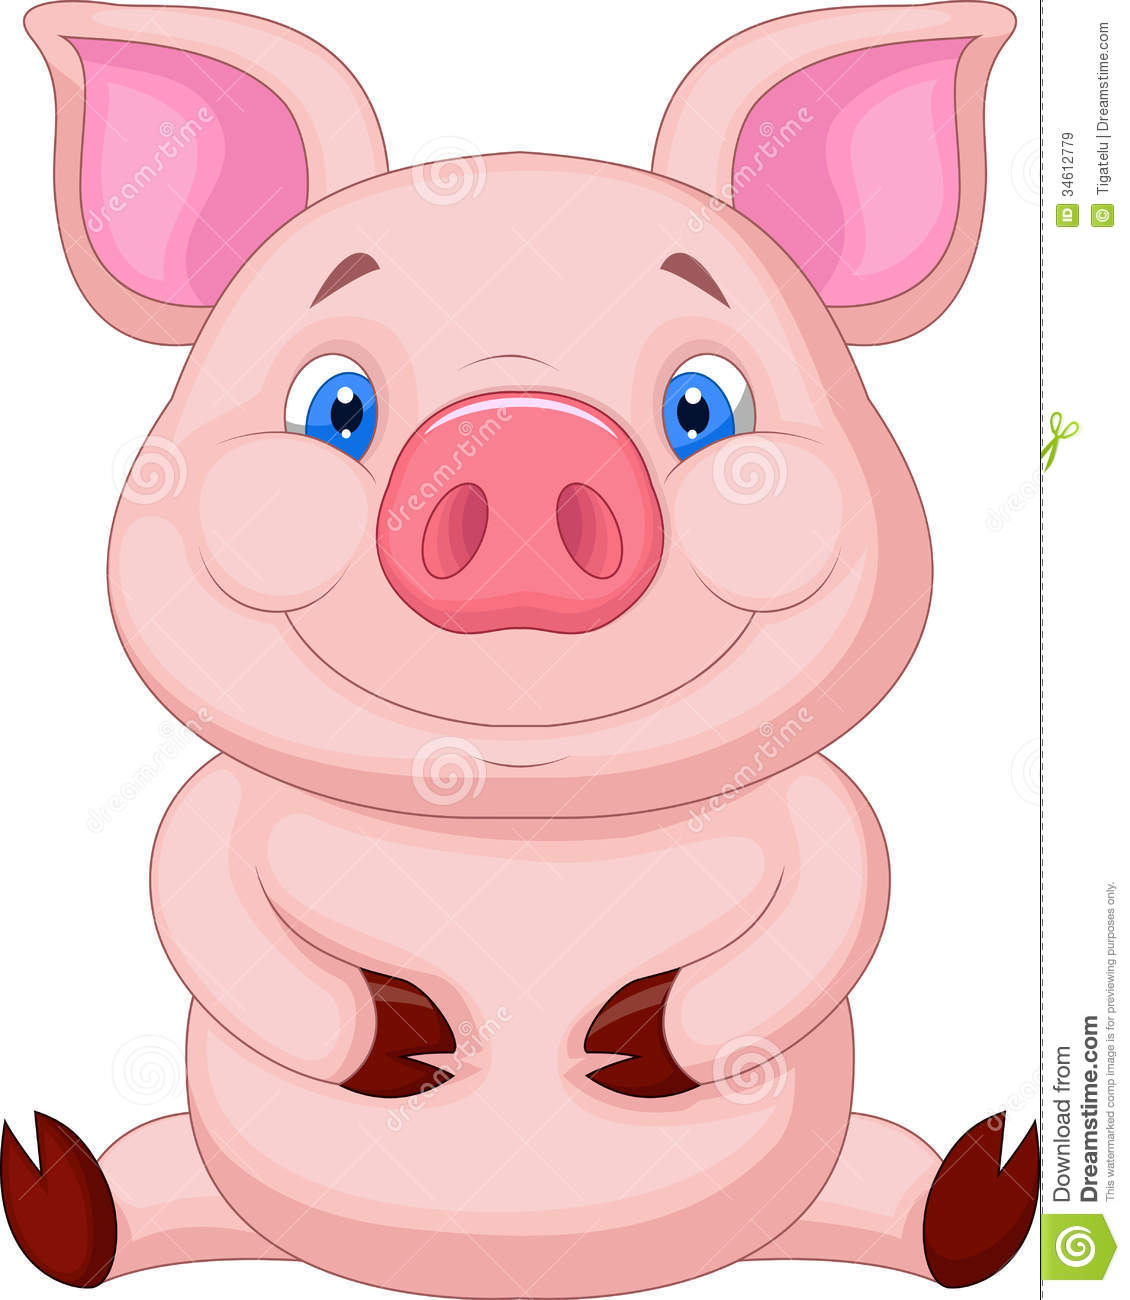 Cute Baby Pig Cartoon Sitting Stock Vector - Image: 34612779